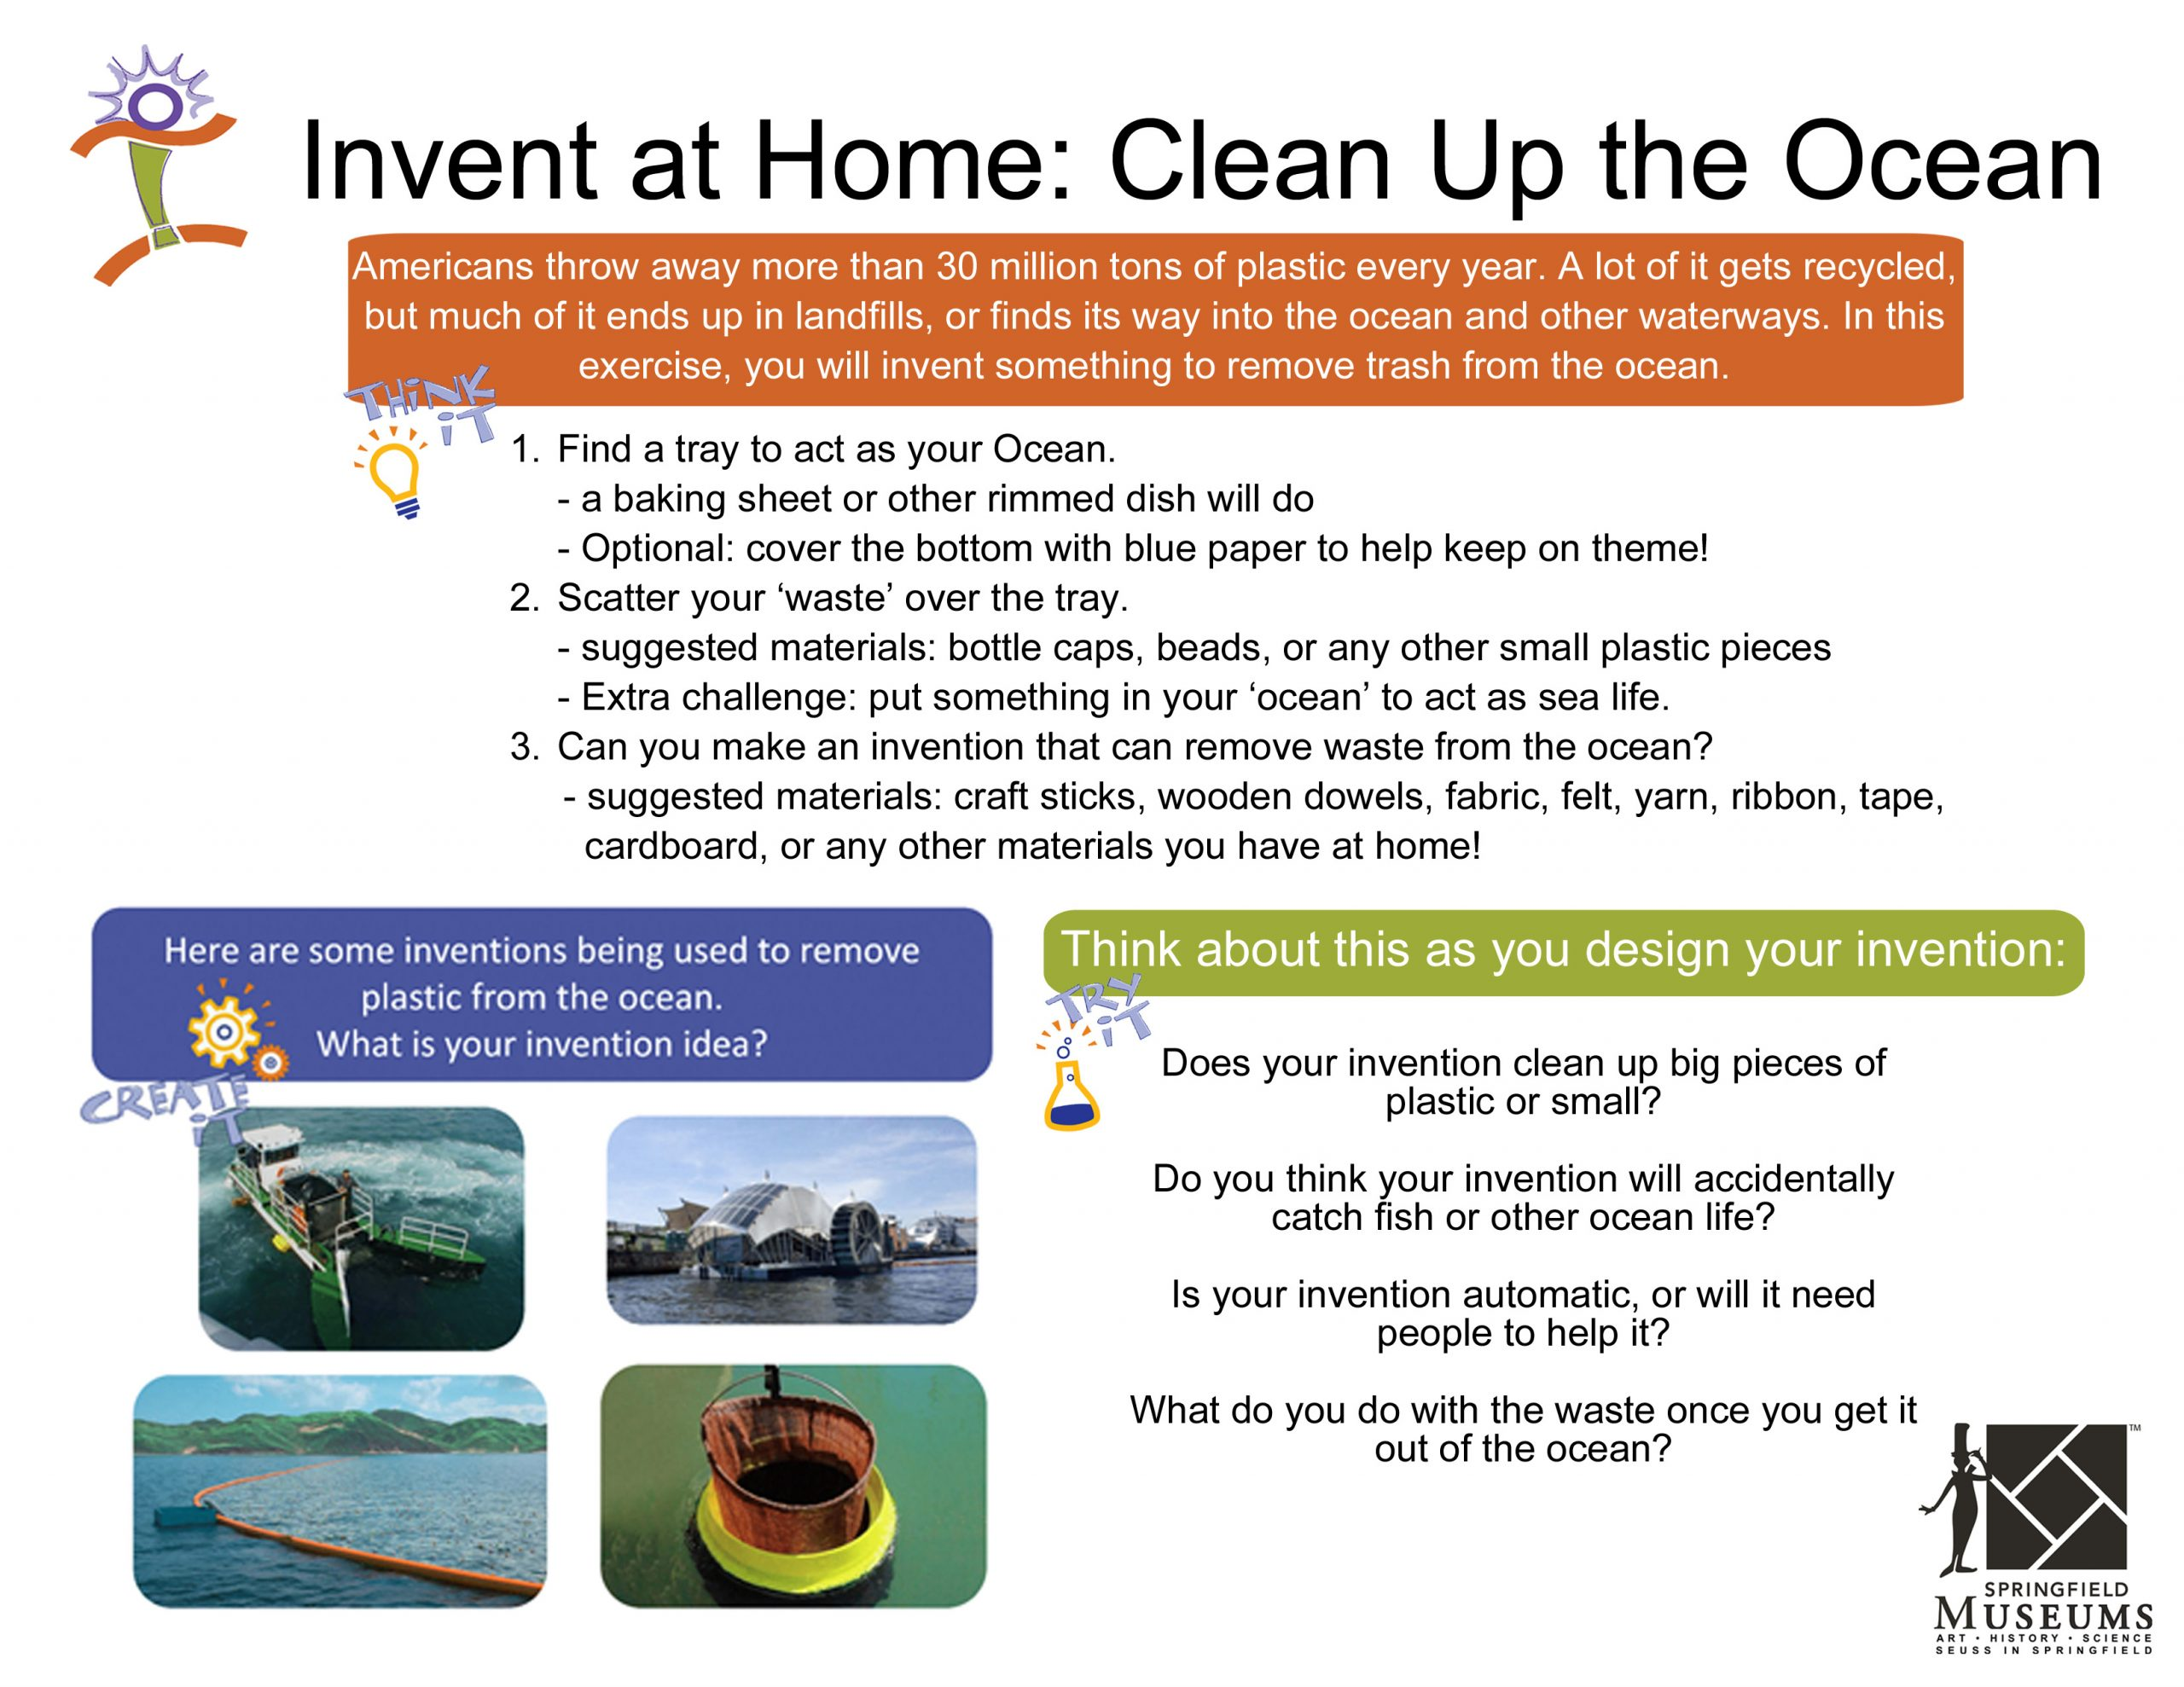 Invent at Home: Clean Up the Ocean